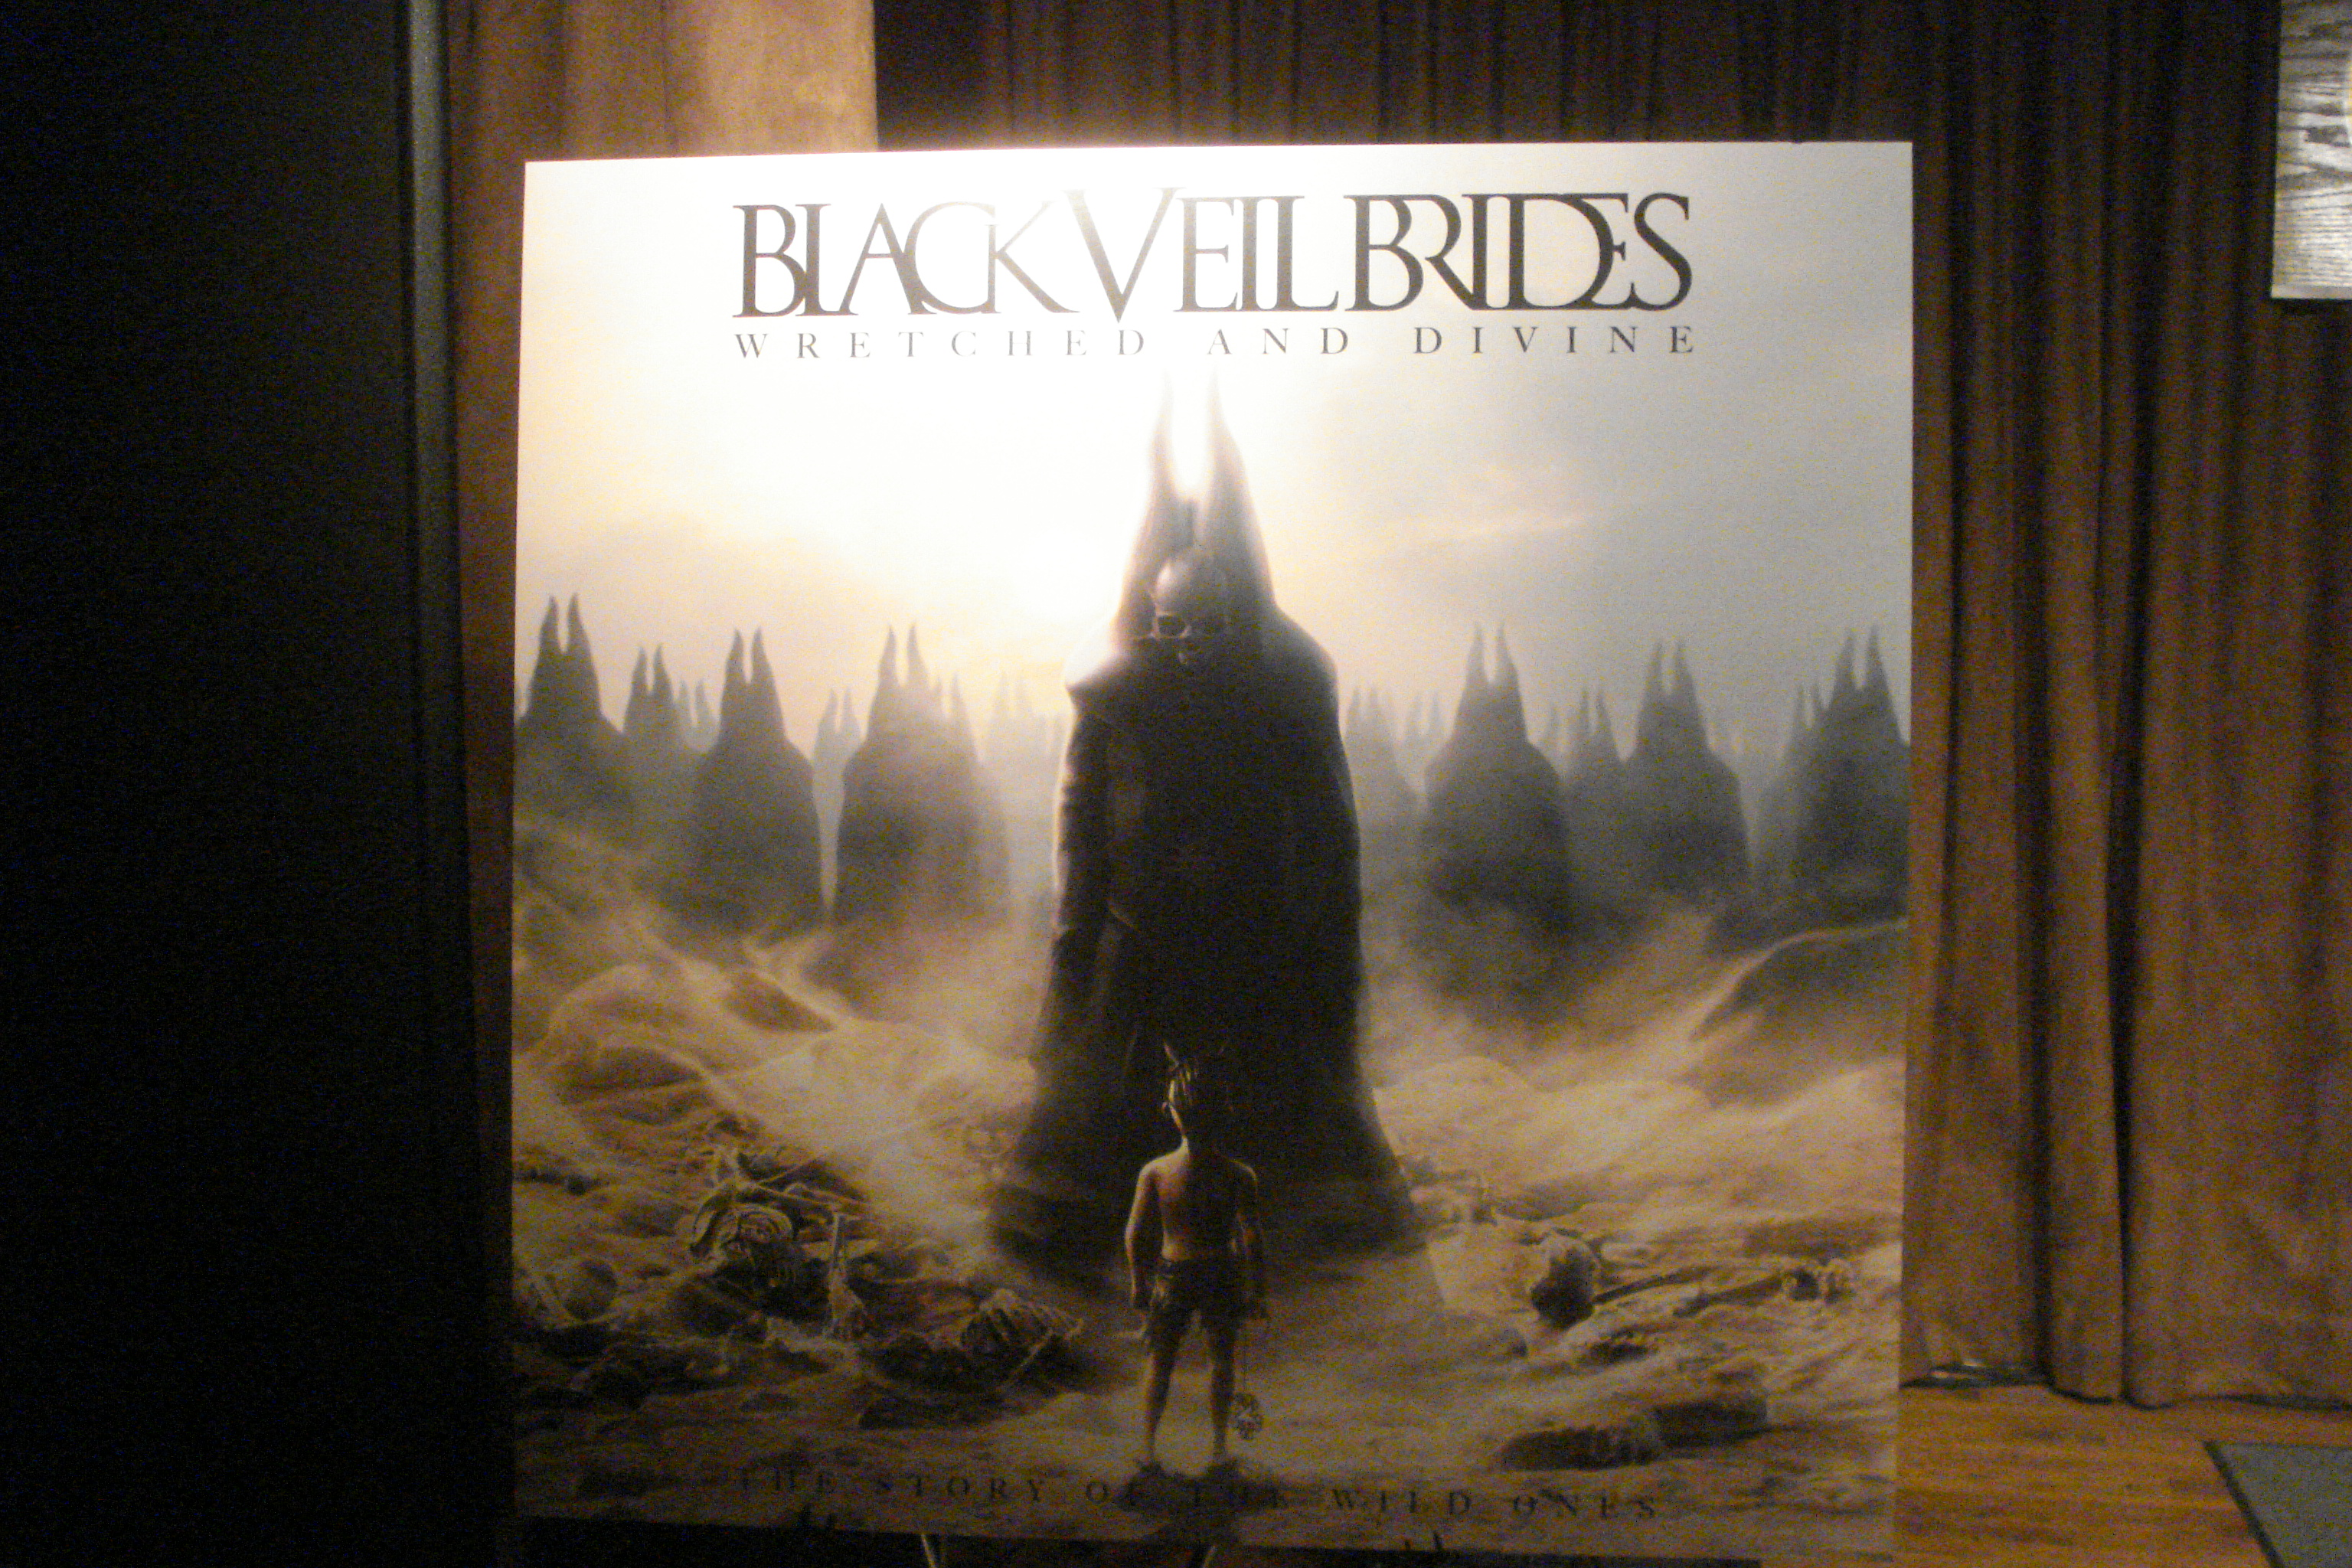 """Getting """"Wretched & Divine"""" with The Black Veil Brides (12 ..."""